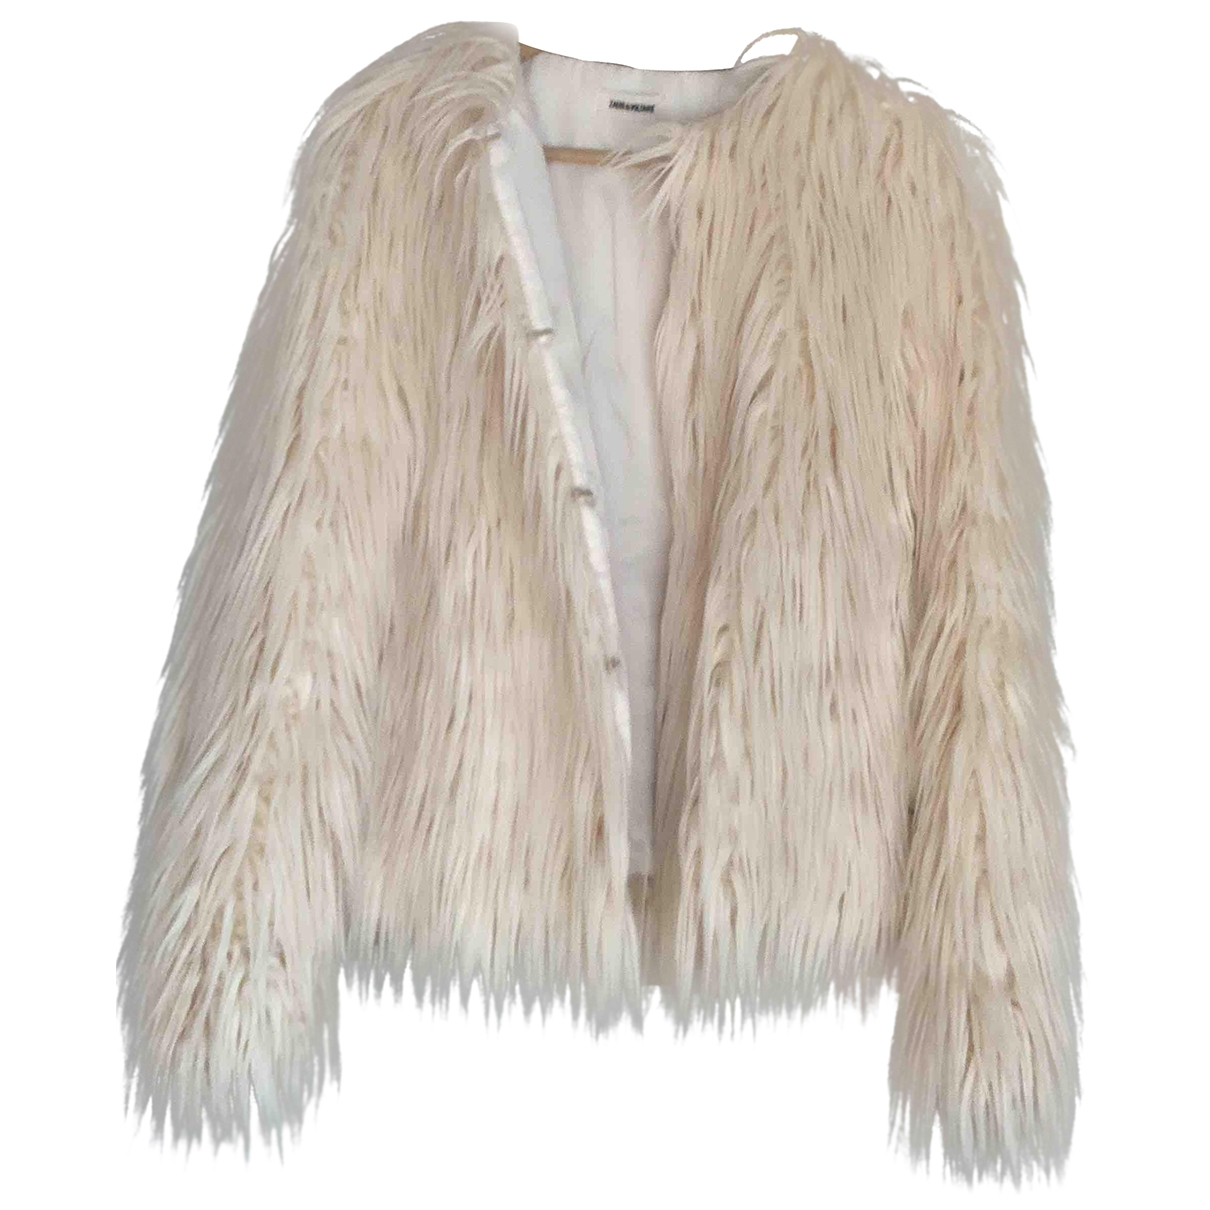 Zadig & Voltaire \N Beige Faux fur jacket for Women 36 FR